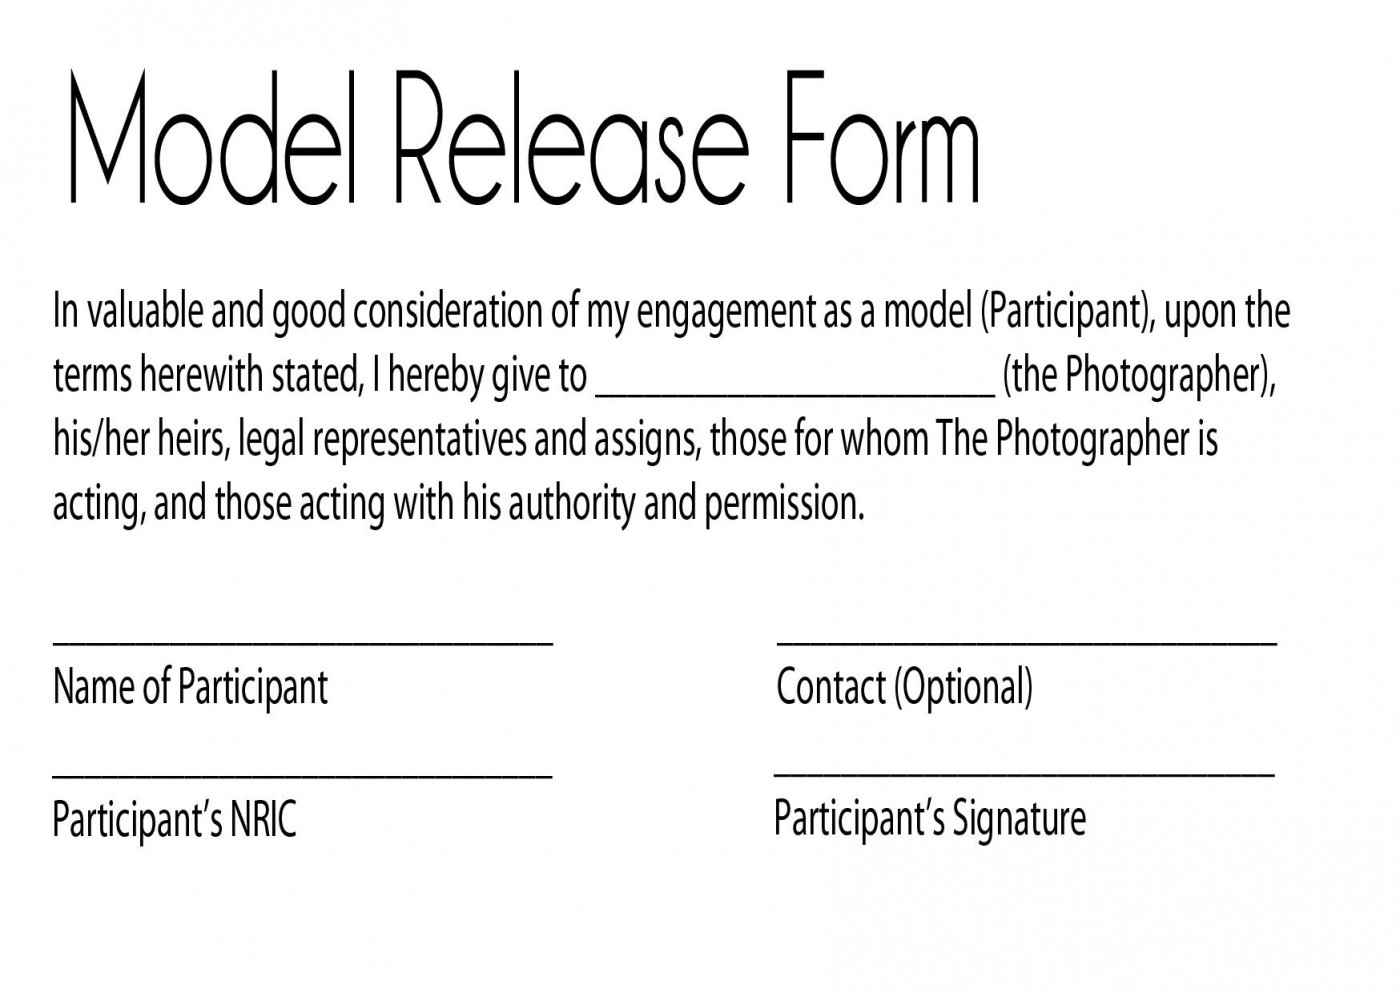 002 Surprising Model Release Form Template Picture  Photographer Gdpr Simple1400